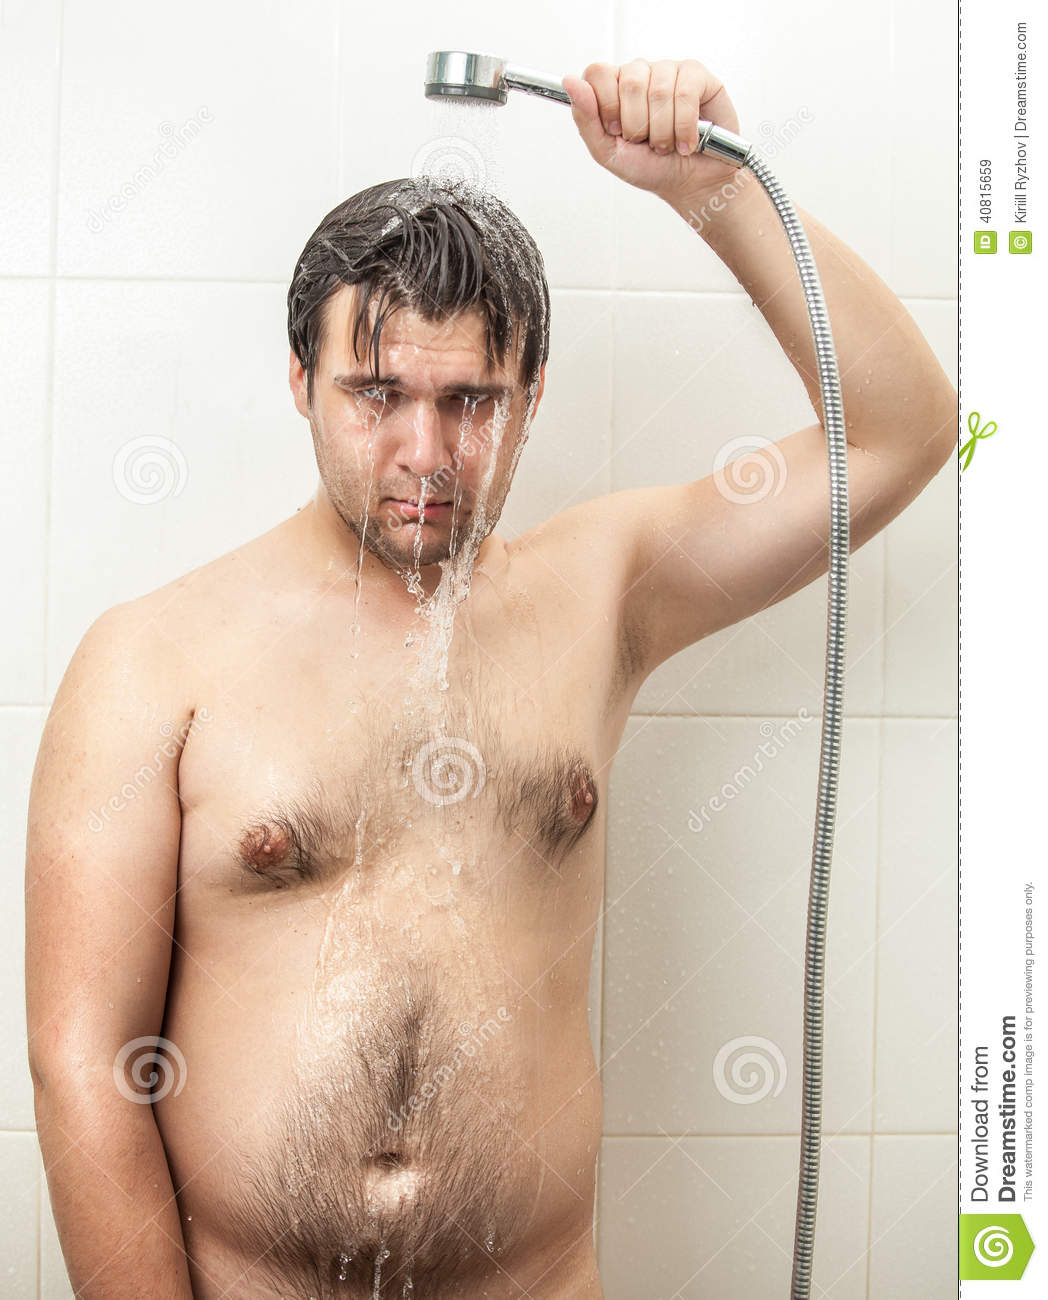 Shower hairy